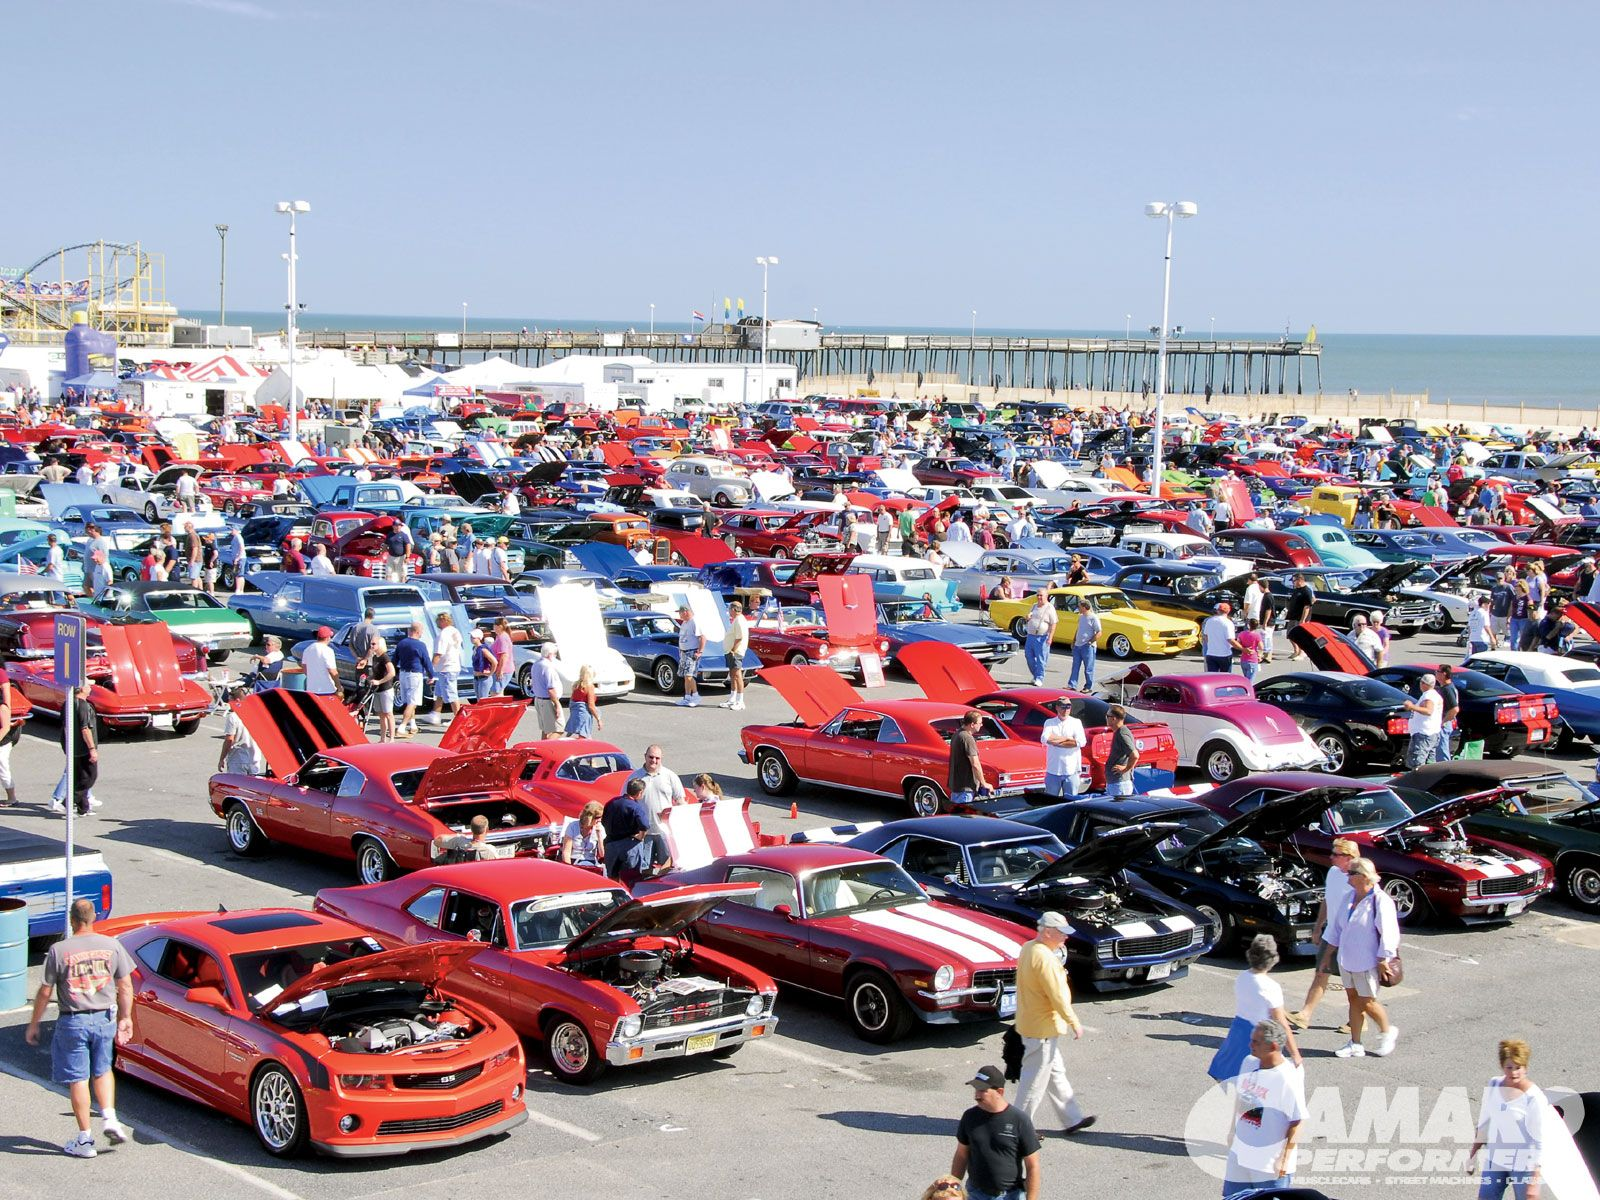 Car Show At The Inlet Ocean City Md MD Goin Downey Oshun Hon - Ocean city car show